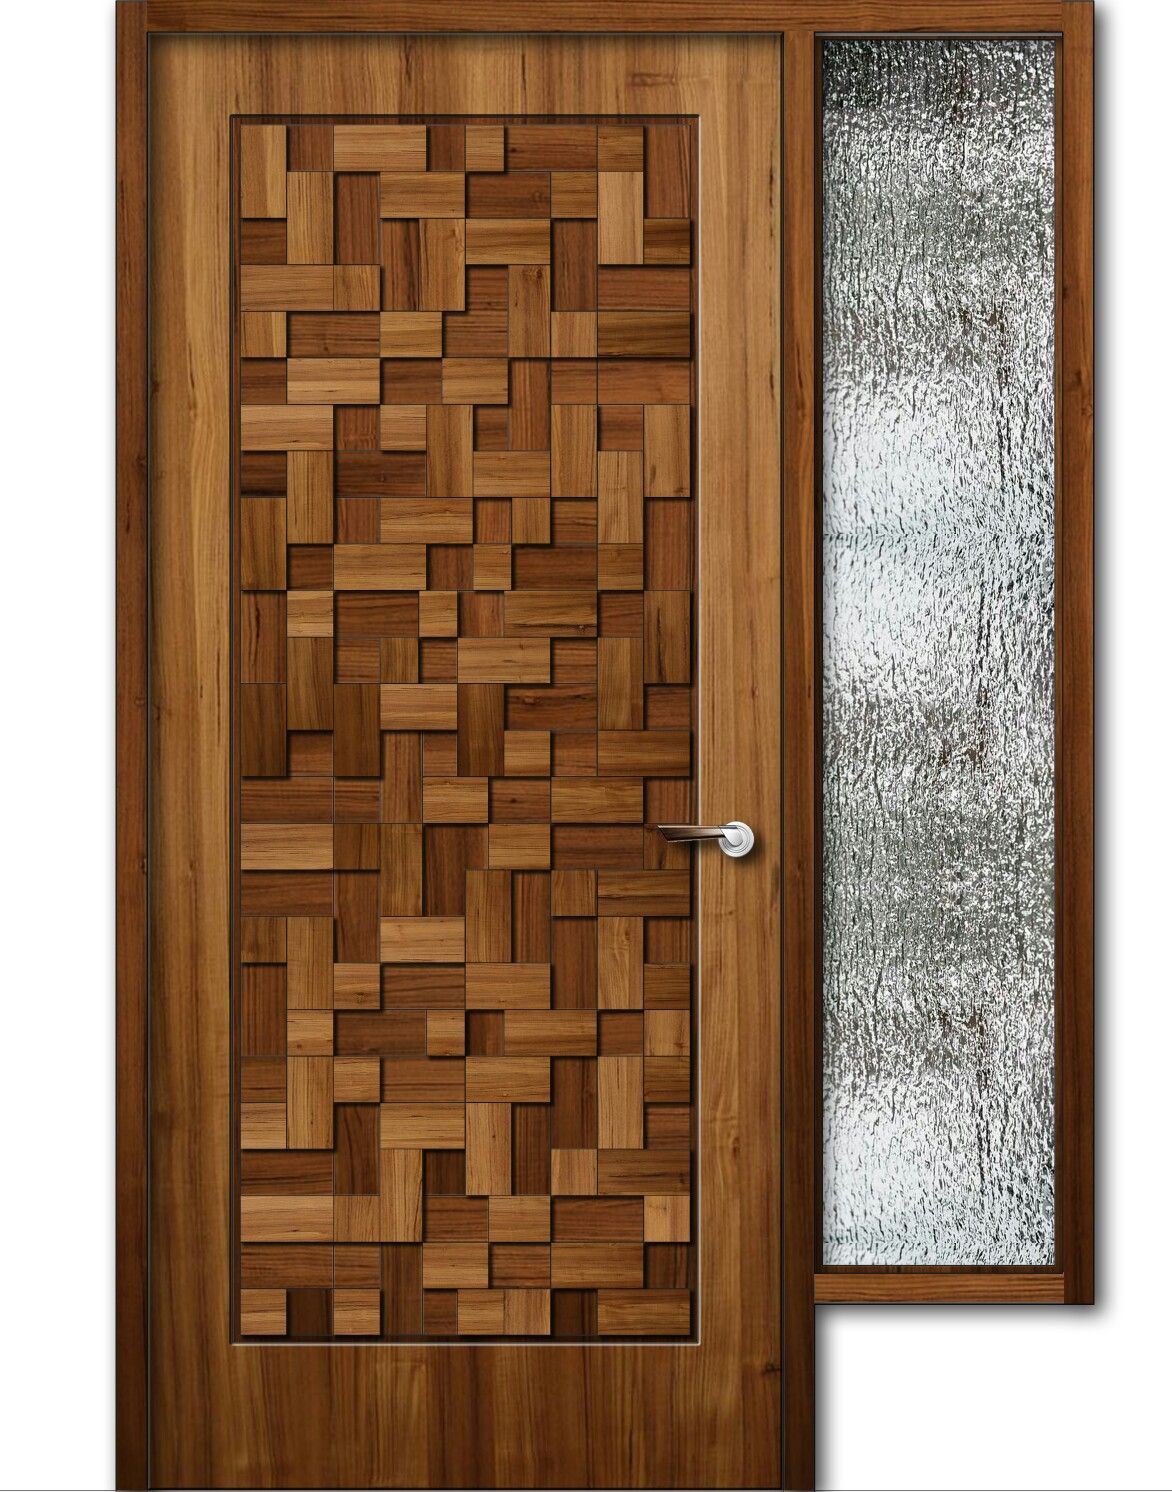 Teak wood finish wooden door with window 8feet height for Residential main door design